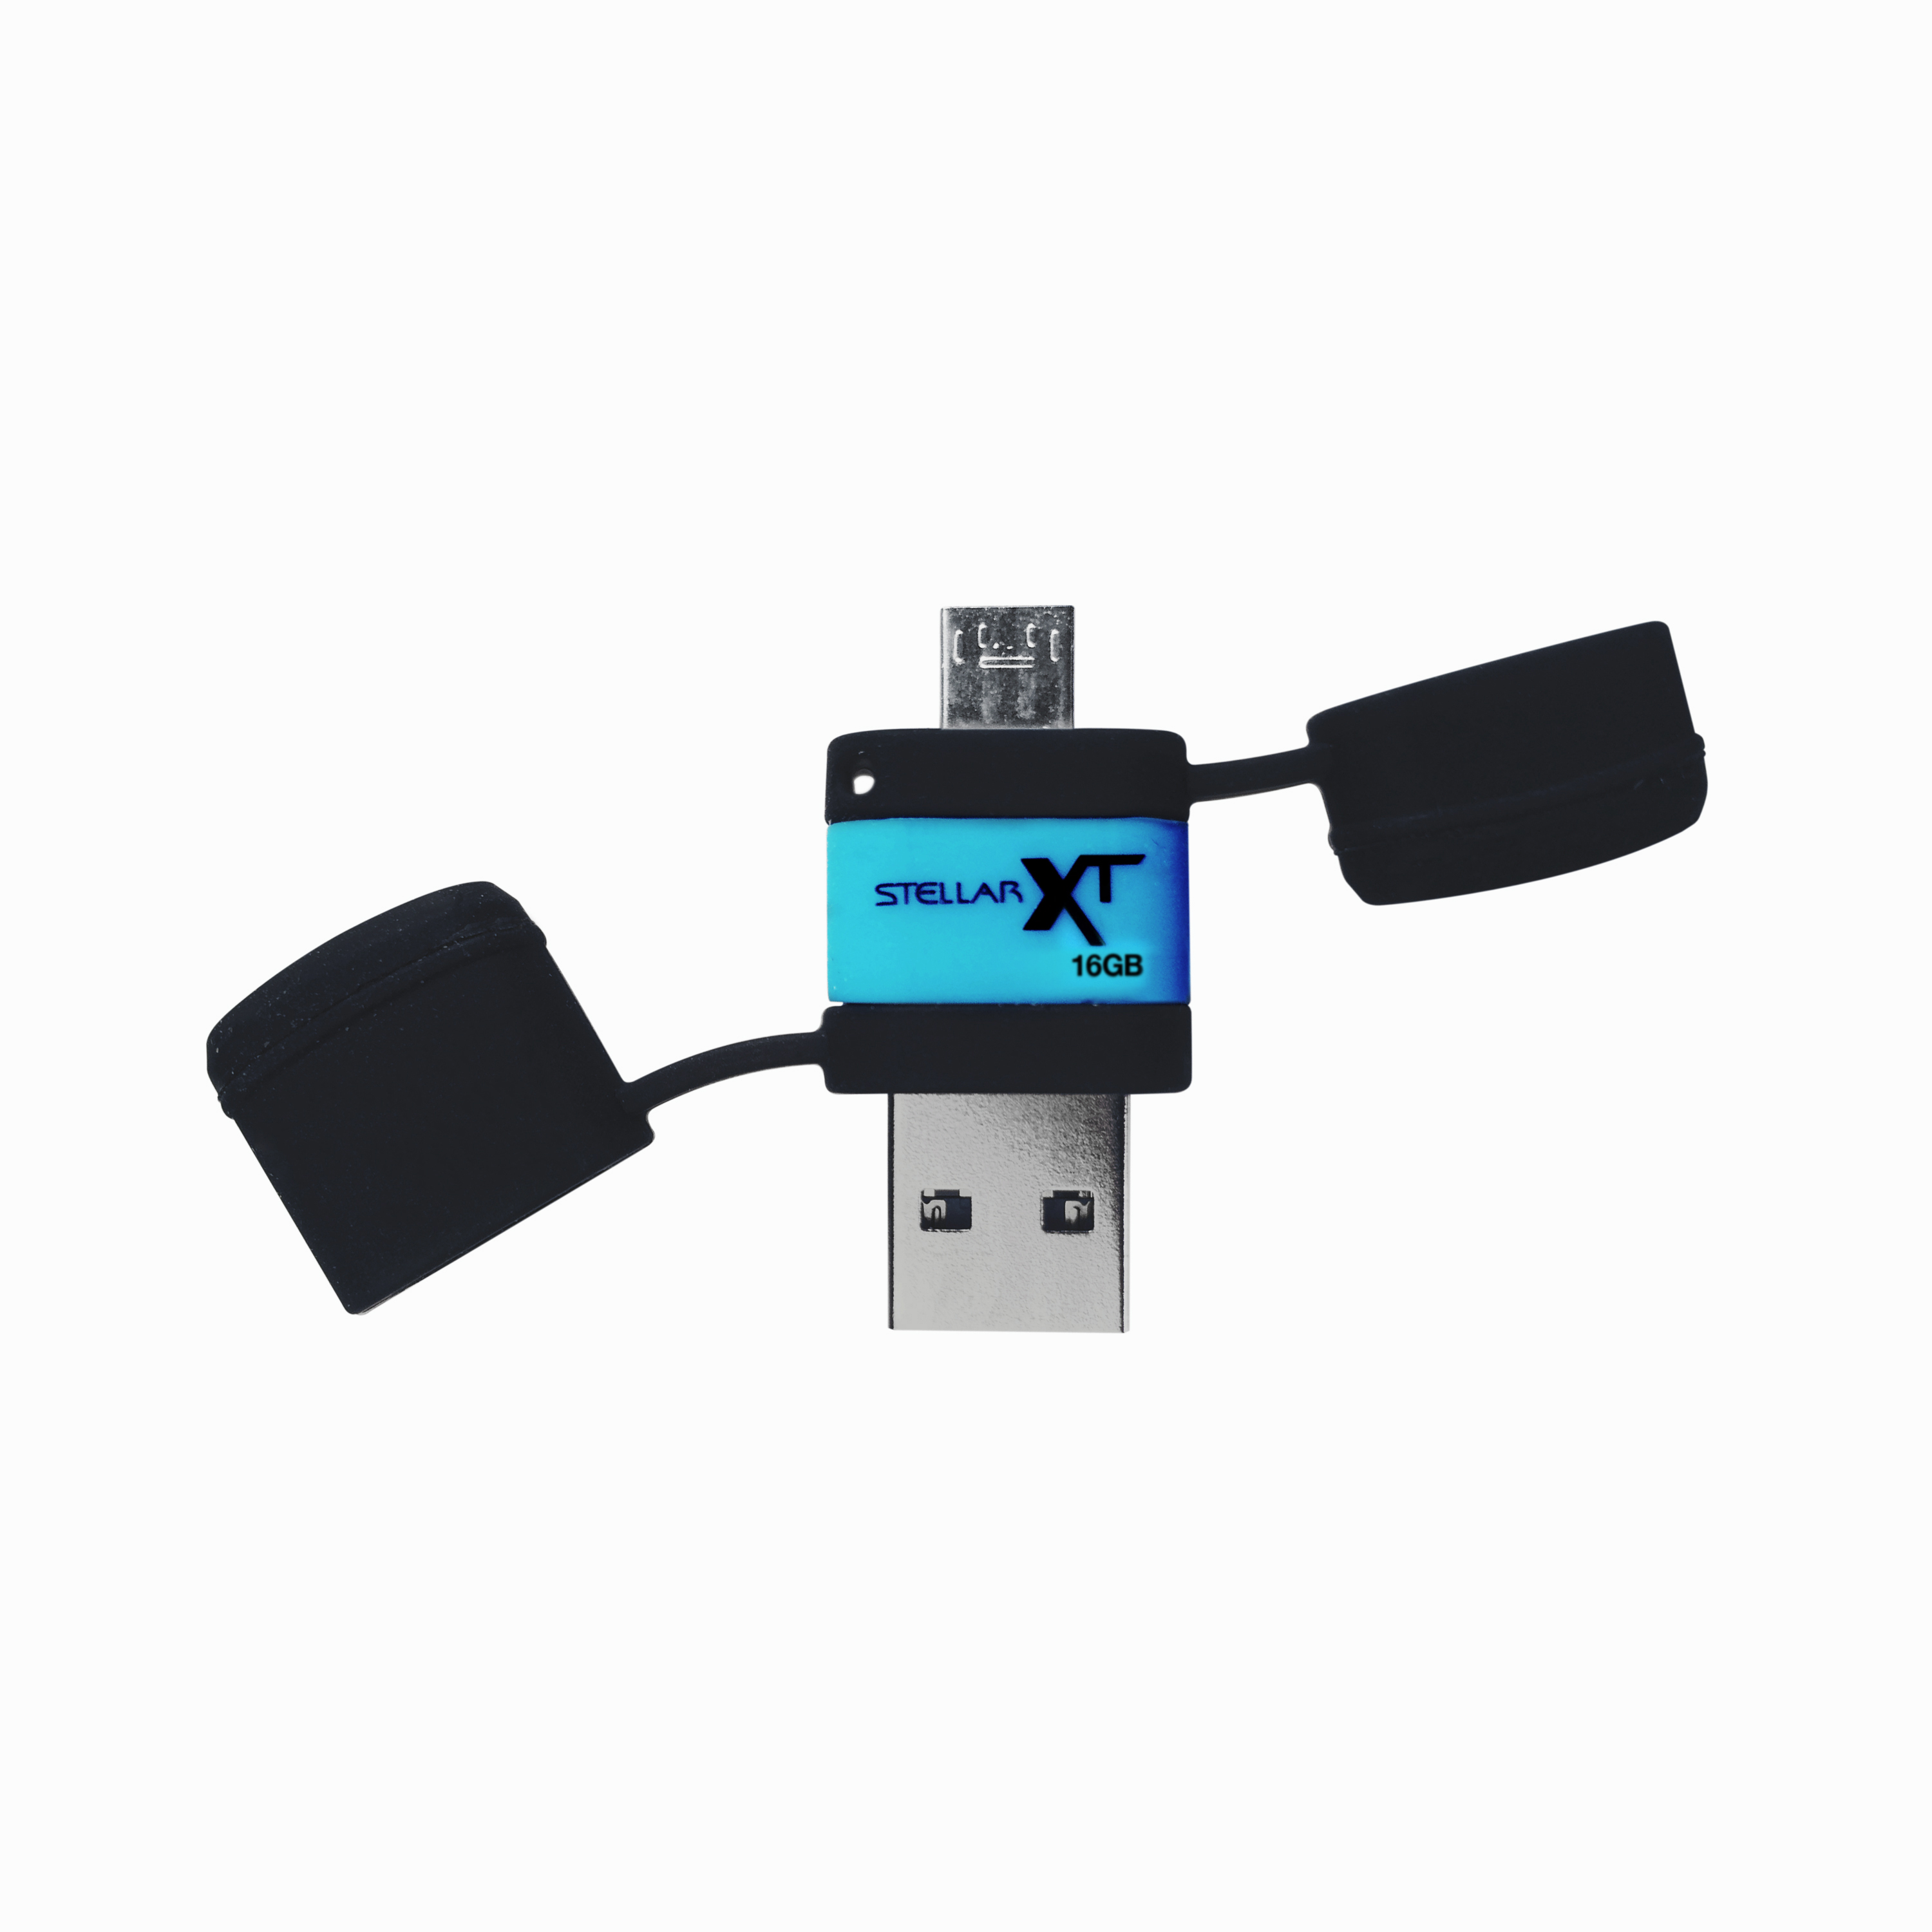 16GB Patriot Stellar XT OTG USB 3.0 110/10MBs